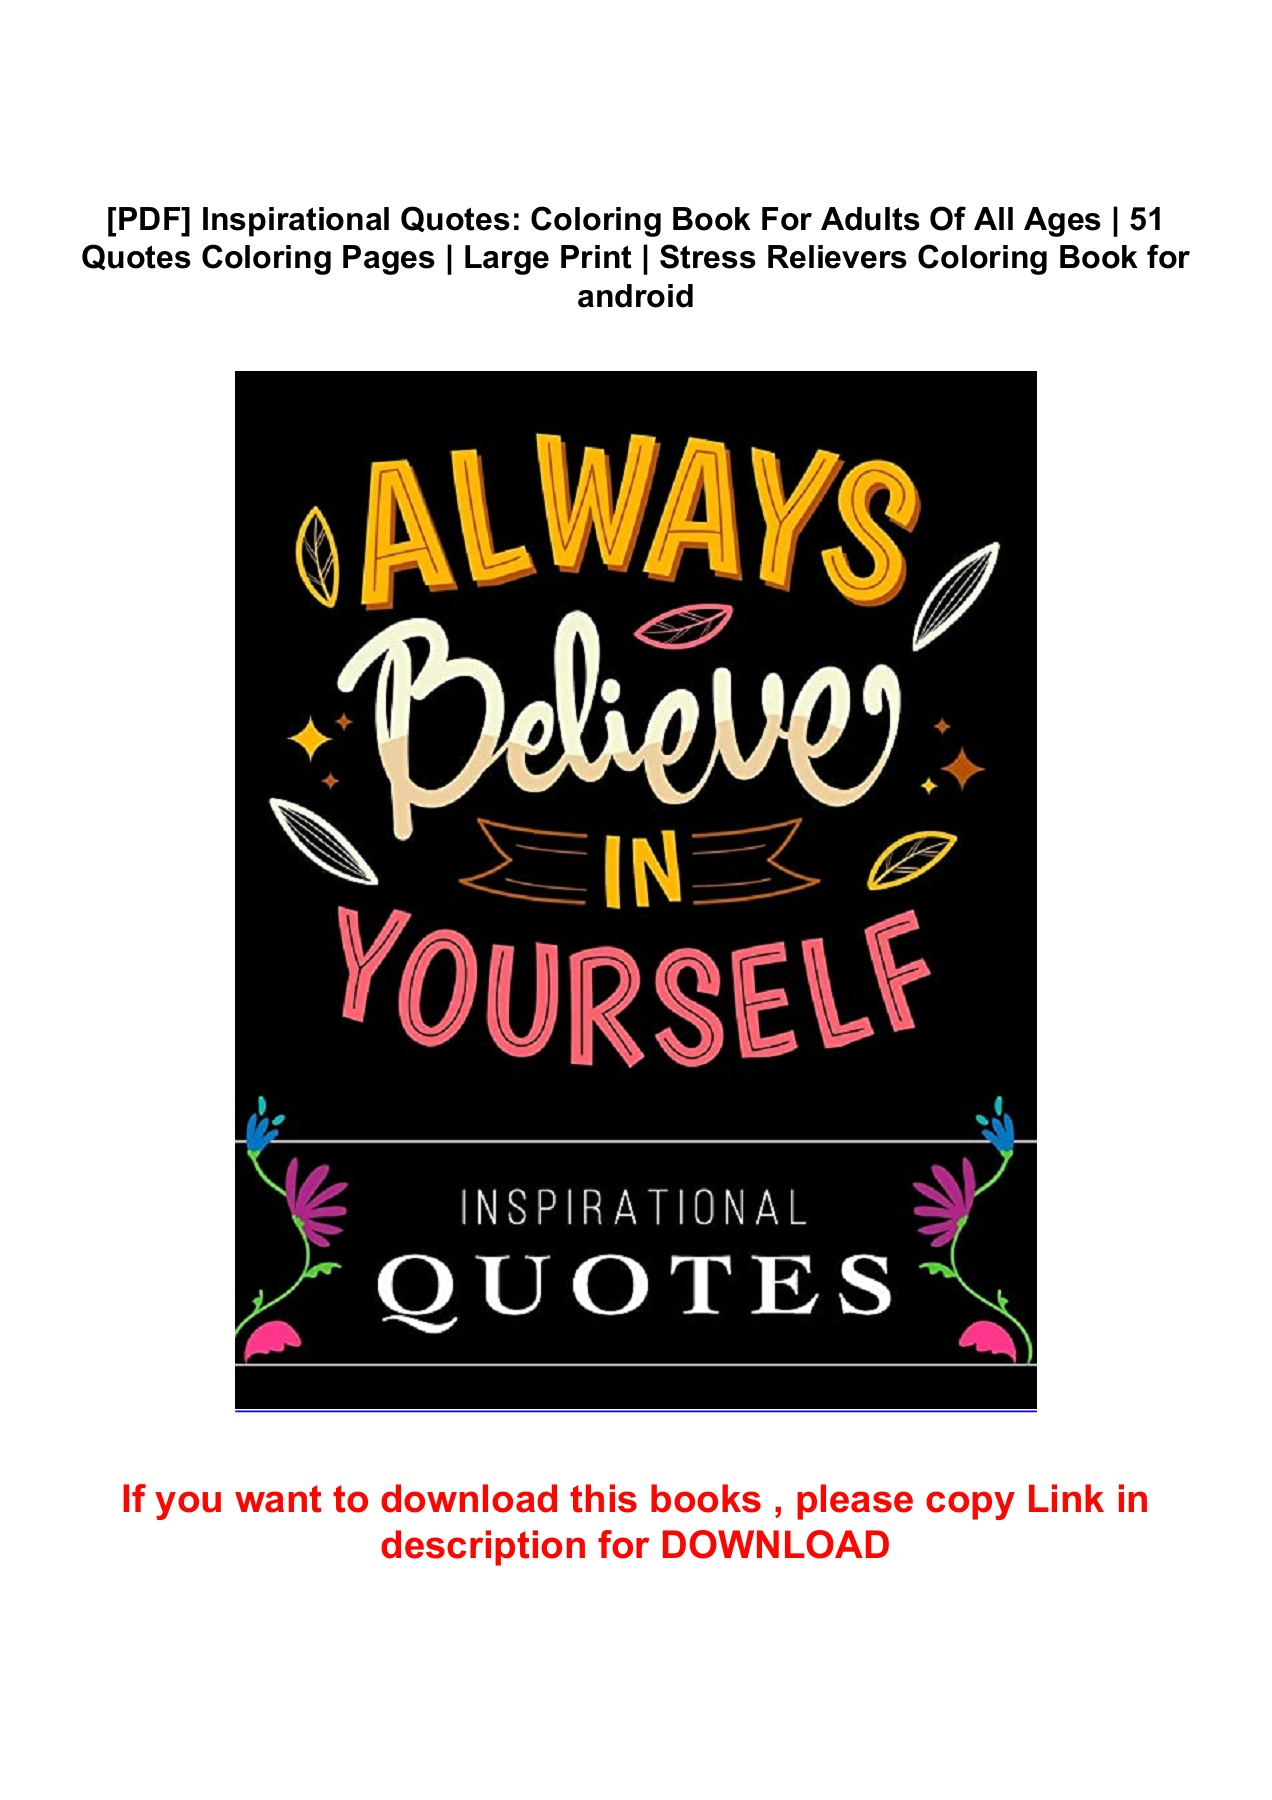 Pdf Inspirational Quotes Coloring Book For Adults Of All Ages 51 Quotes Coloring Pages Large Print Stress Relievers Coloring Book For Android Flip Ebook Pages 1 5 Anyflip Anyflip